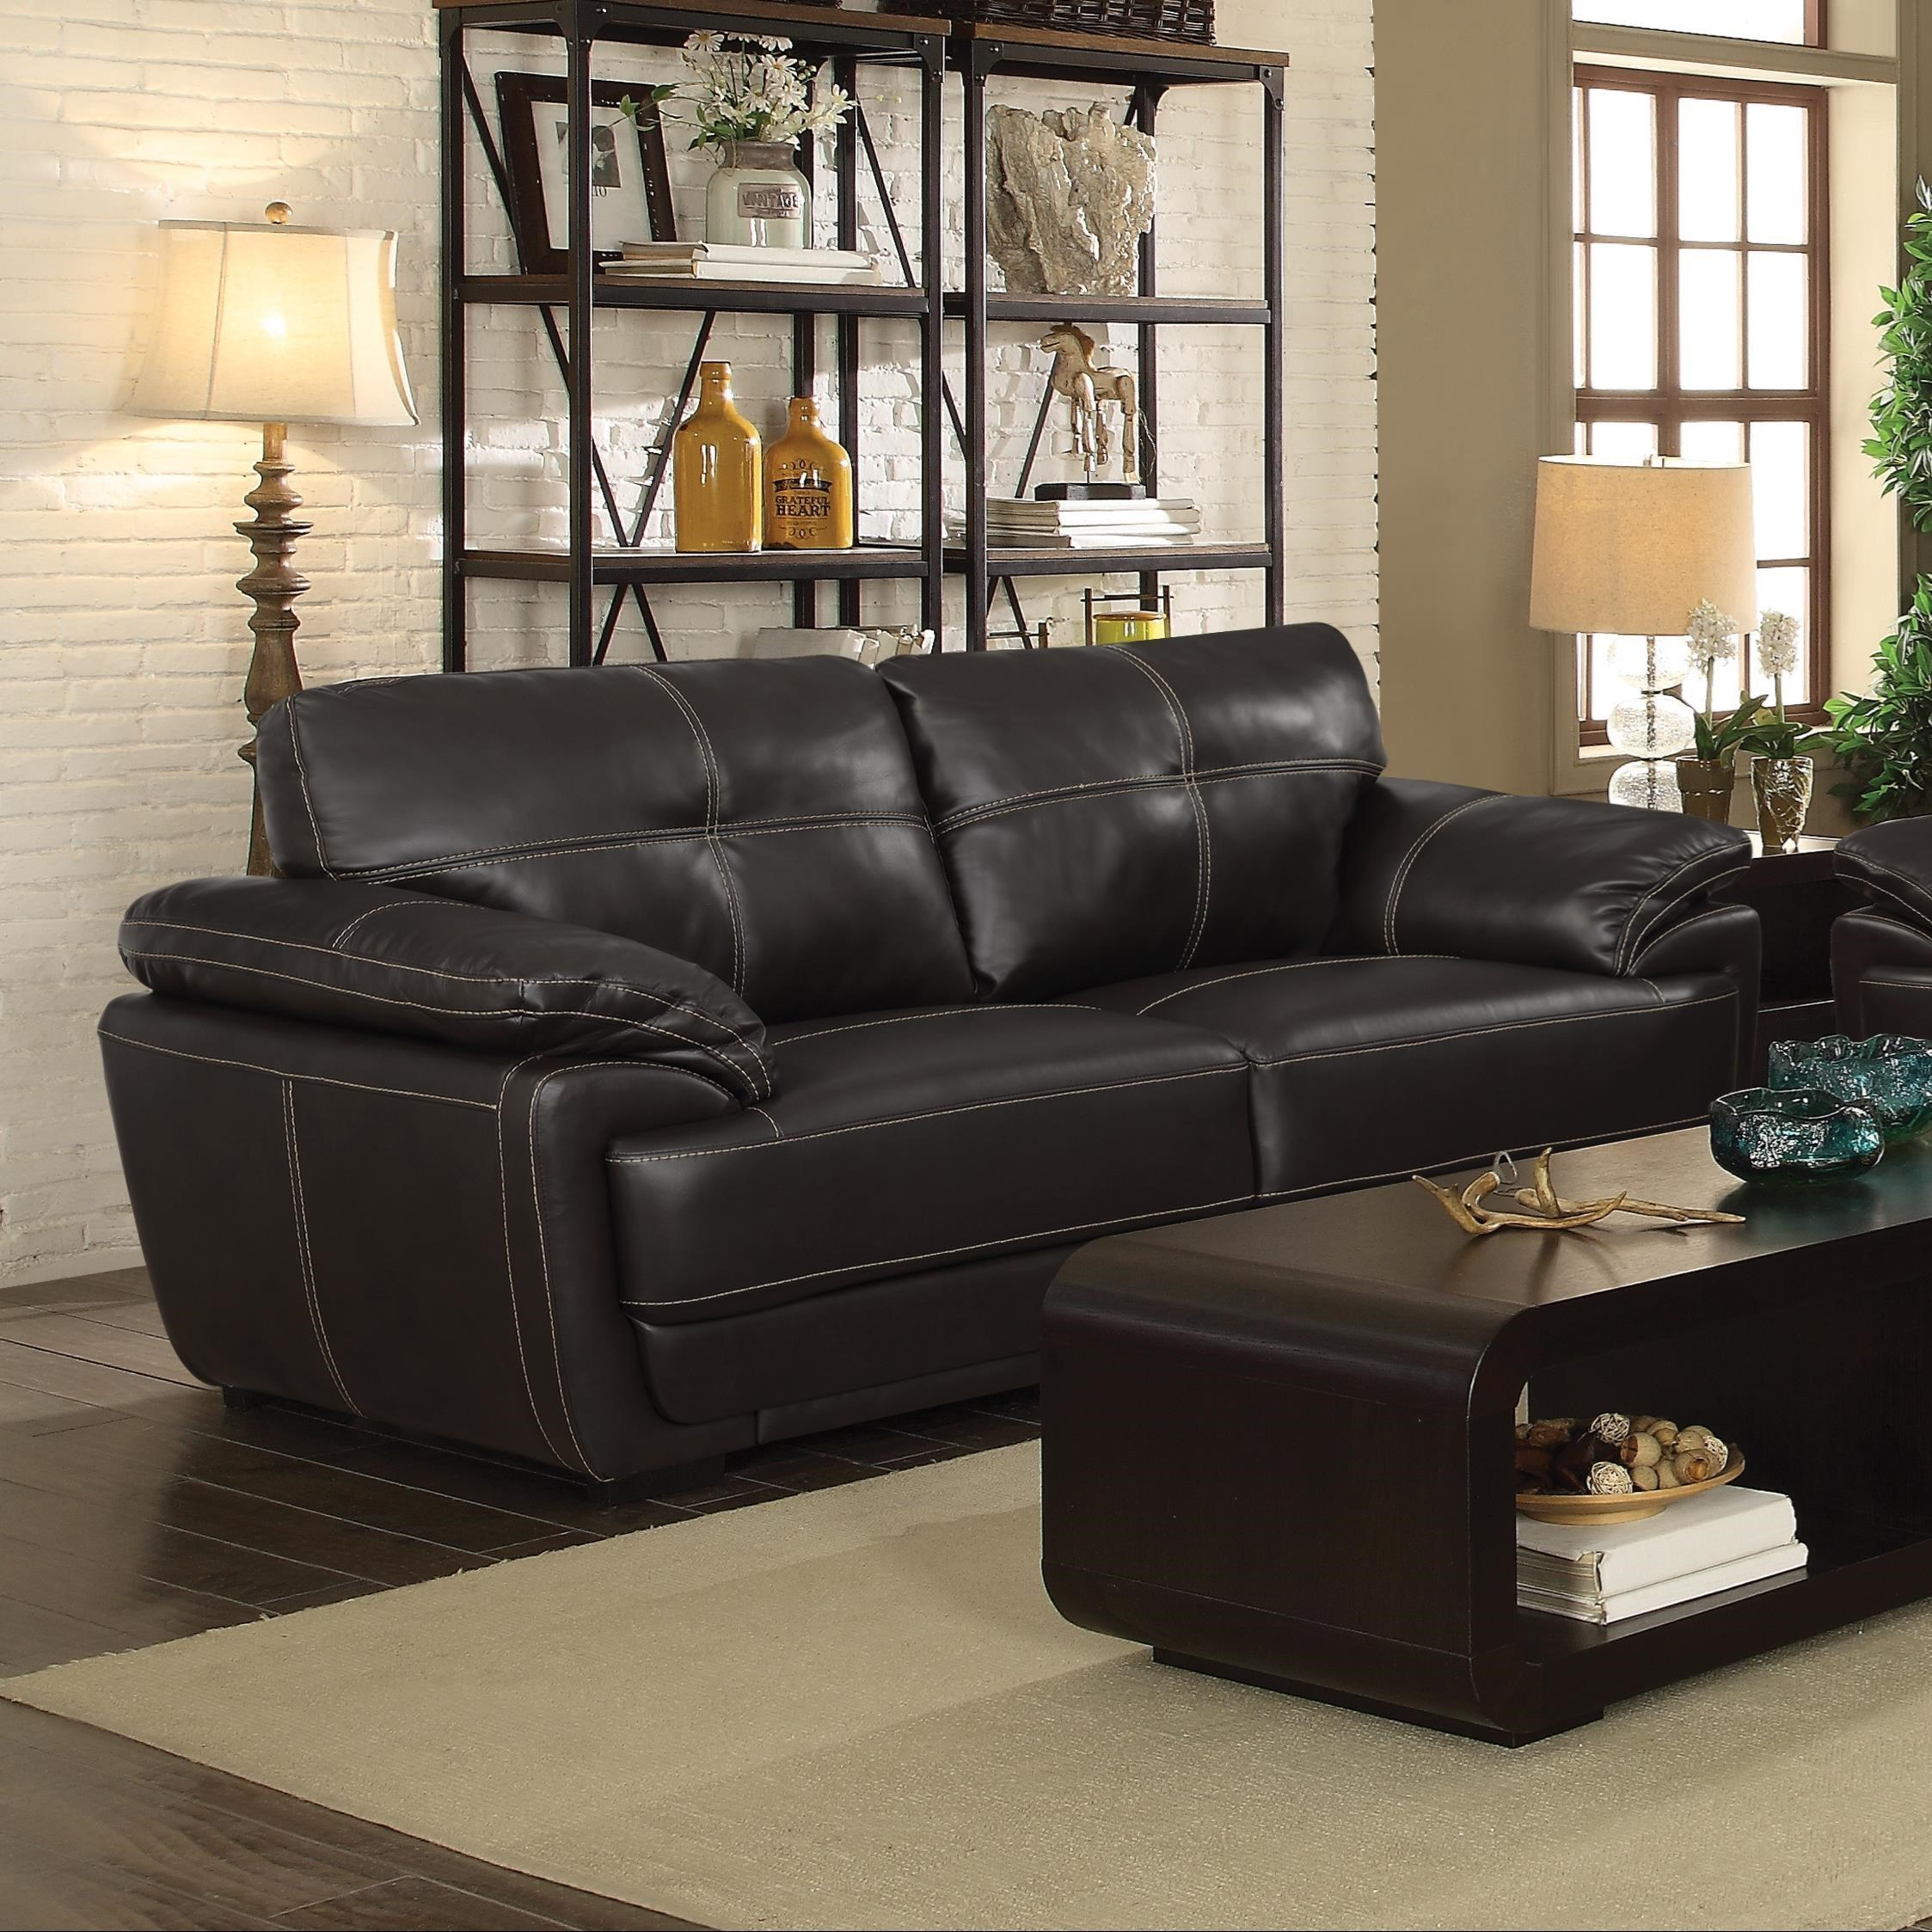 Zenon Brown Sofa Free Shipping Clearance